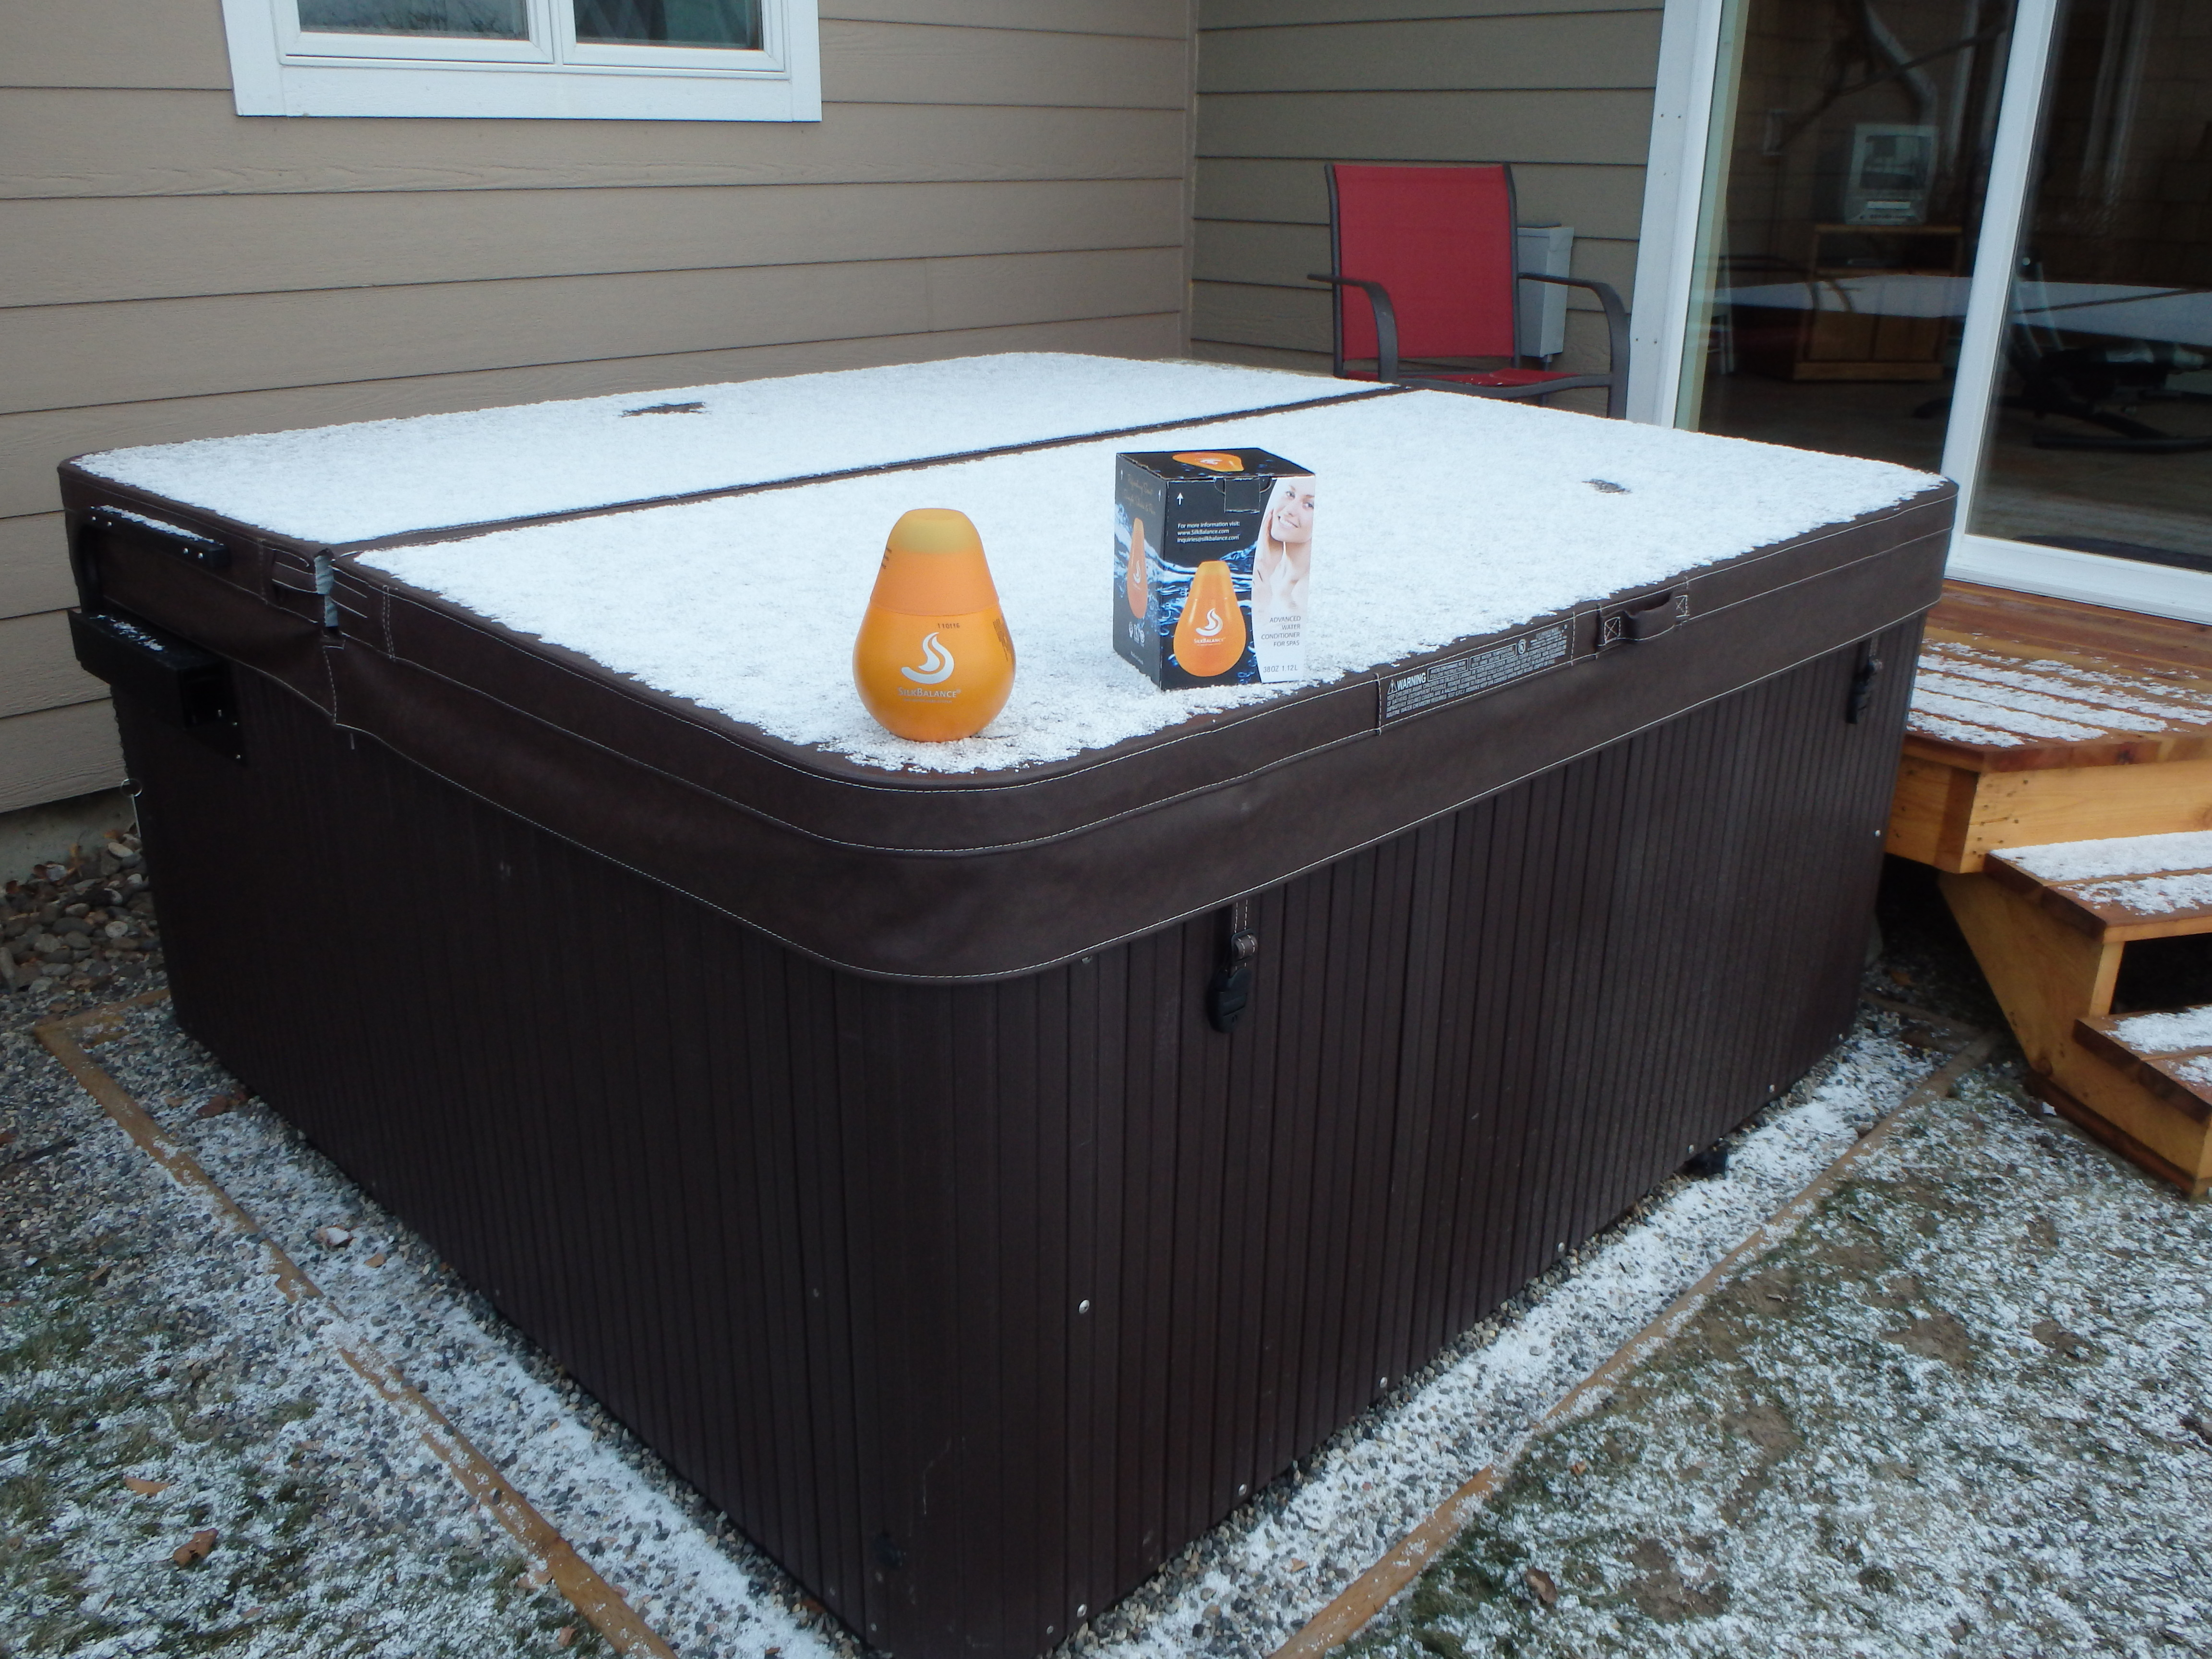 How to Winterize Your Hot Tub – If You Want To